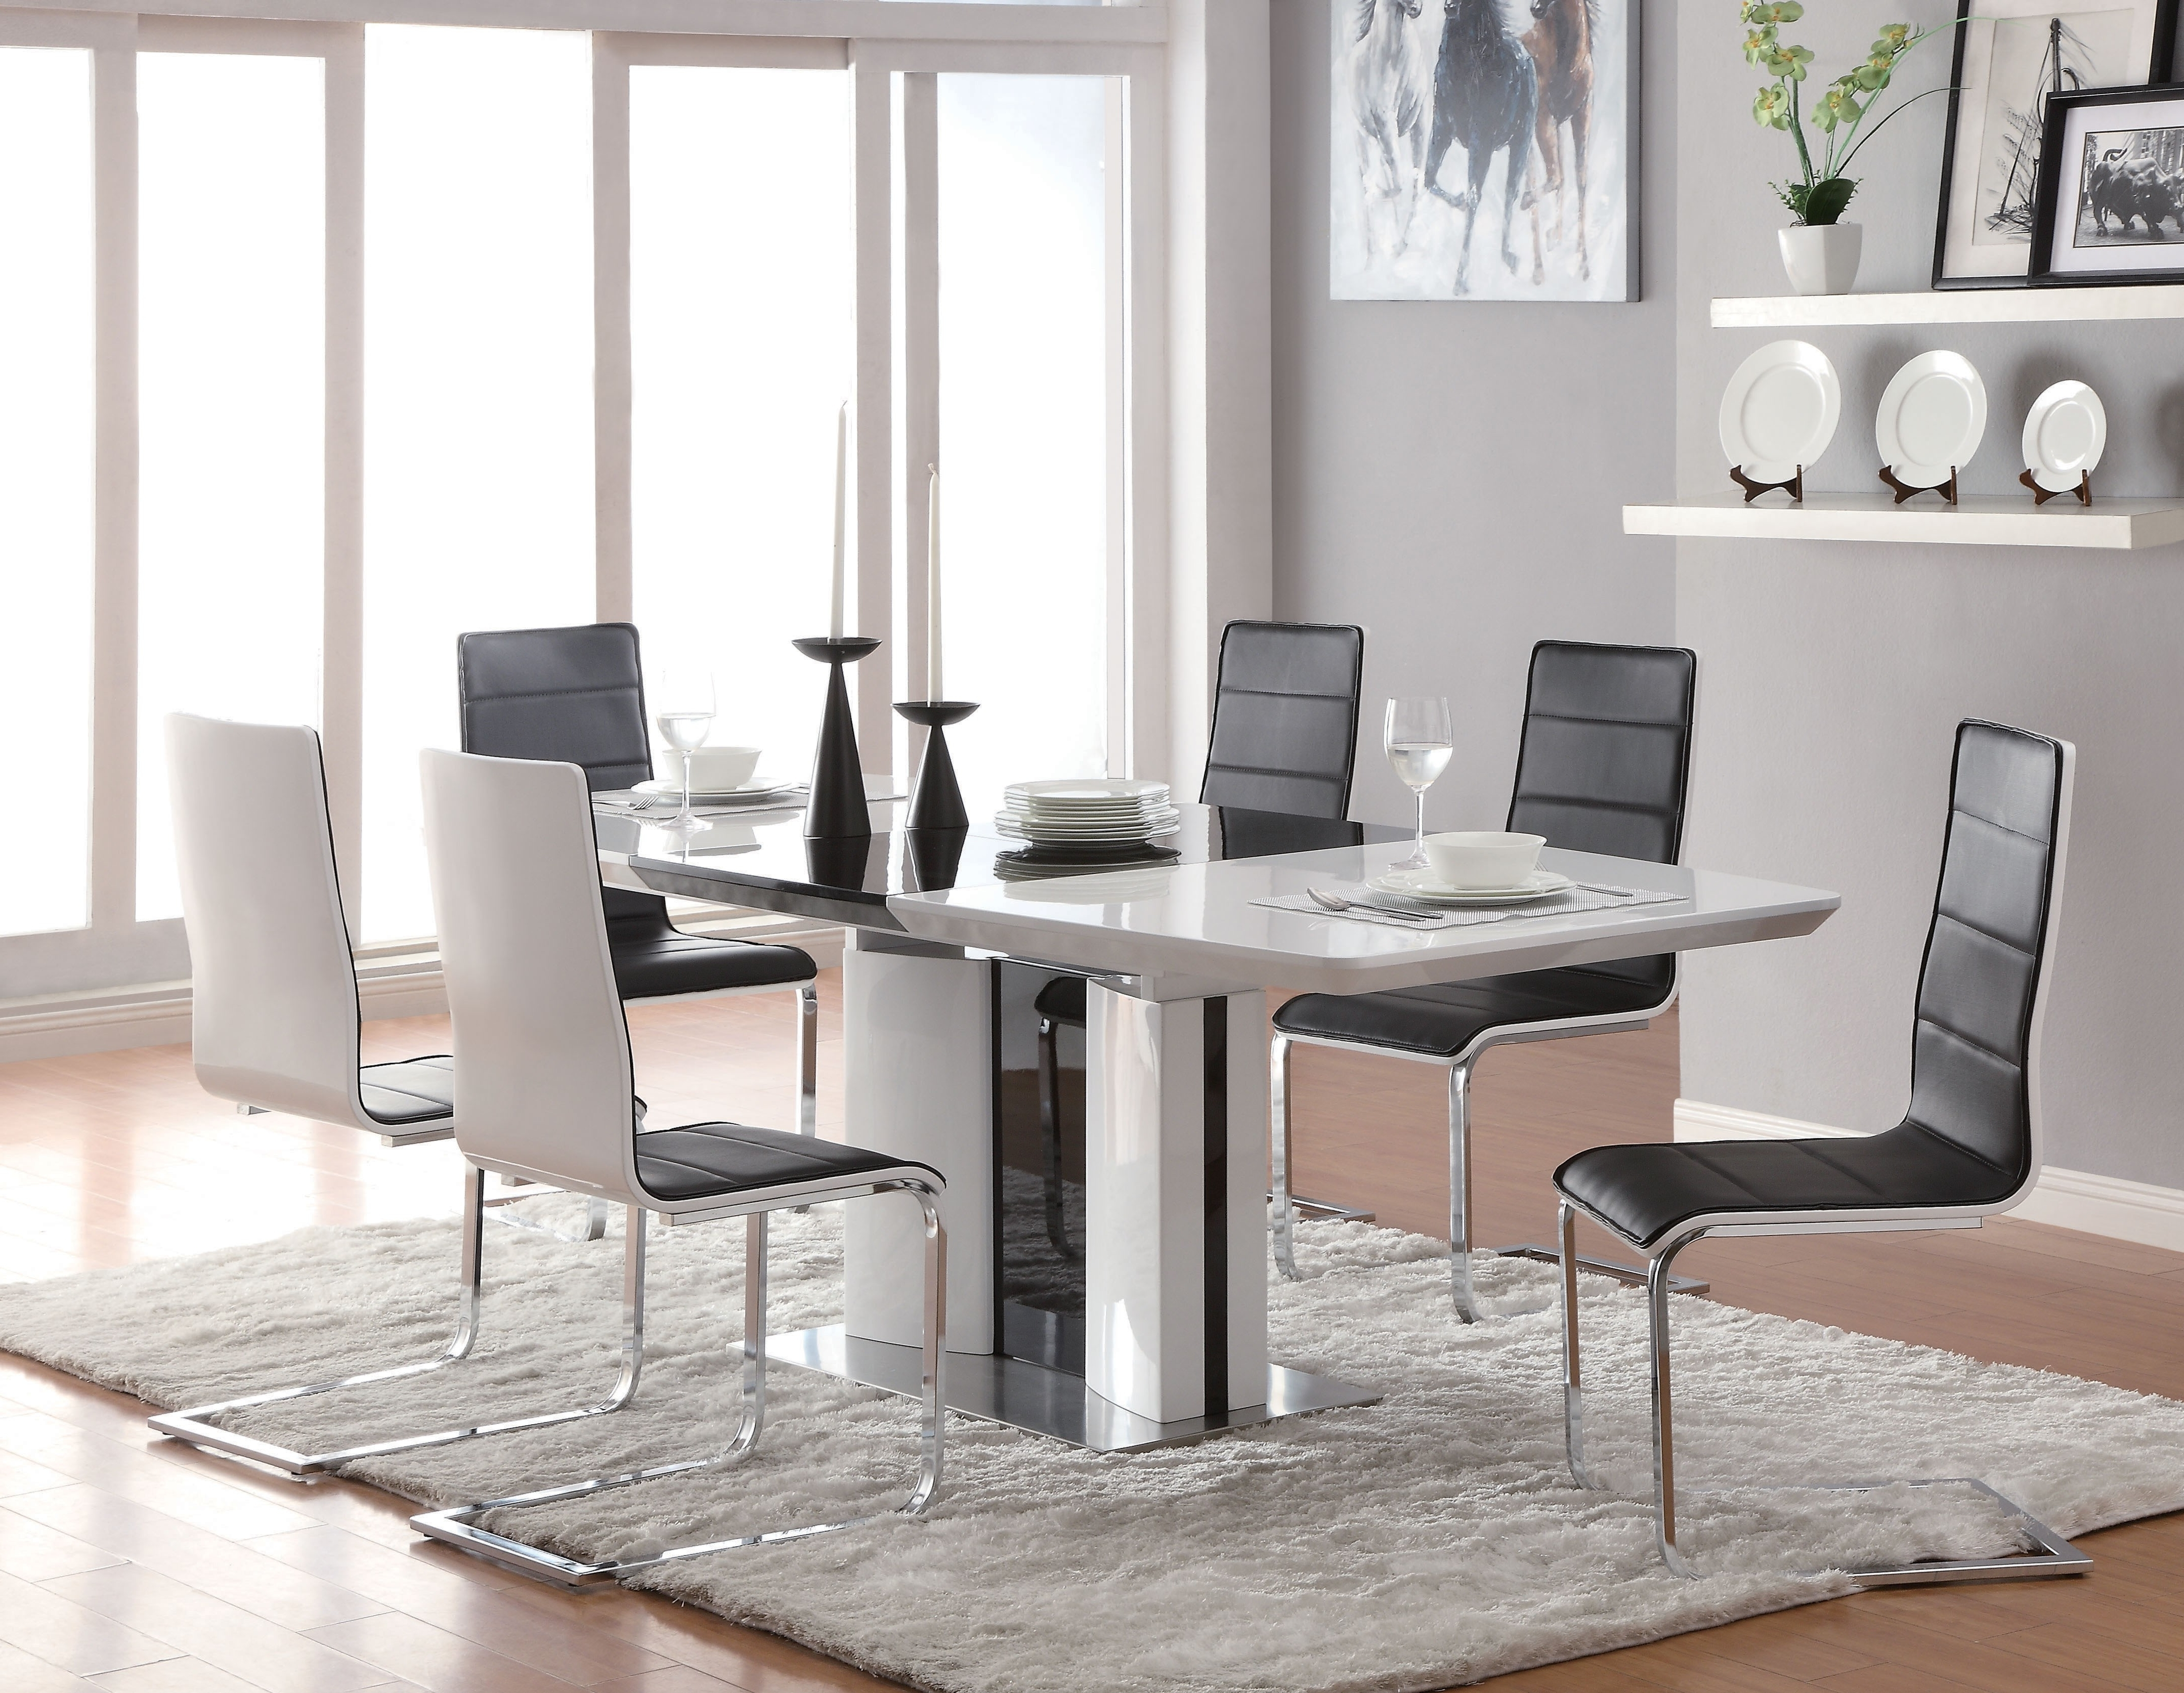 302b22e9b8cca 2018 Broderick Contemporary White Chrome Dining Table Regarding Cheap Contemporary  Dining Tables (View 1 of